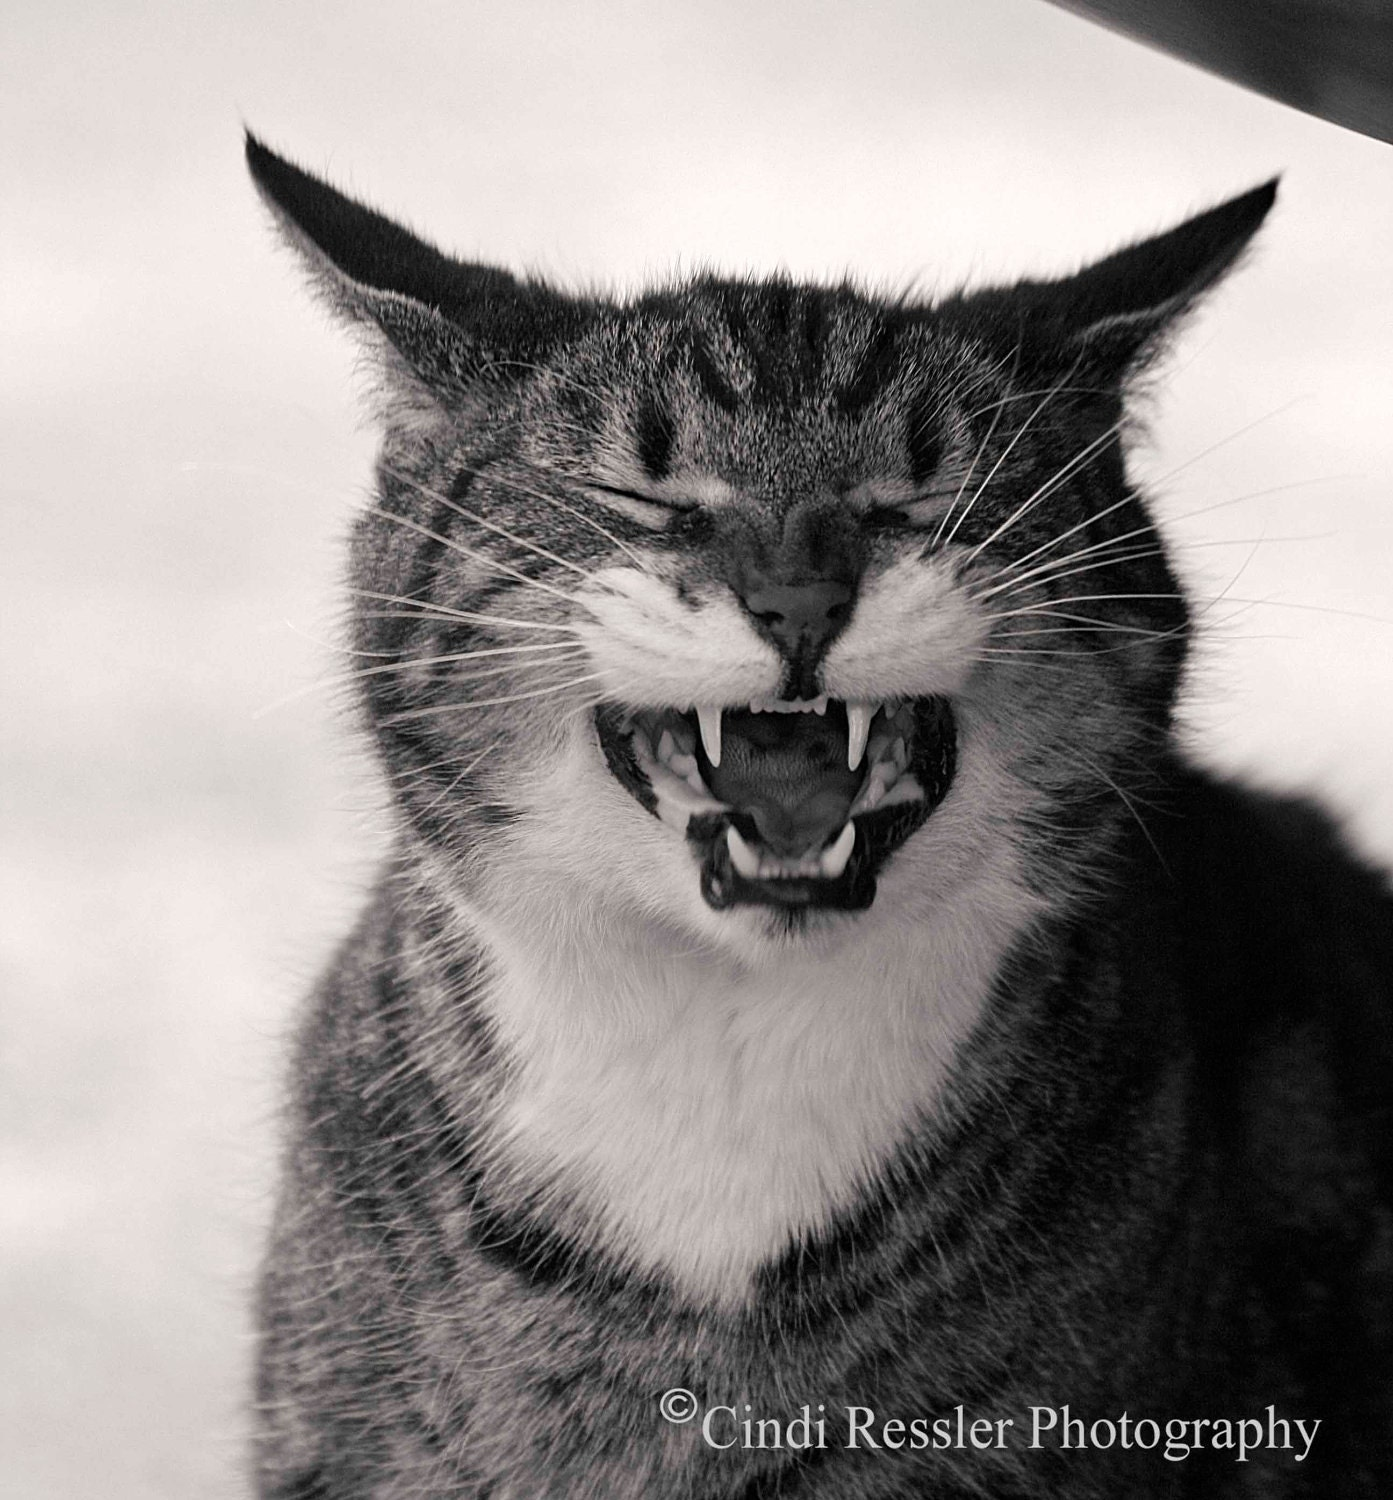 Jake the Cat, 5x5 Fine Art Photography, Cat Portrait, Black and White Photography, Charity item - CindiRessler